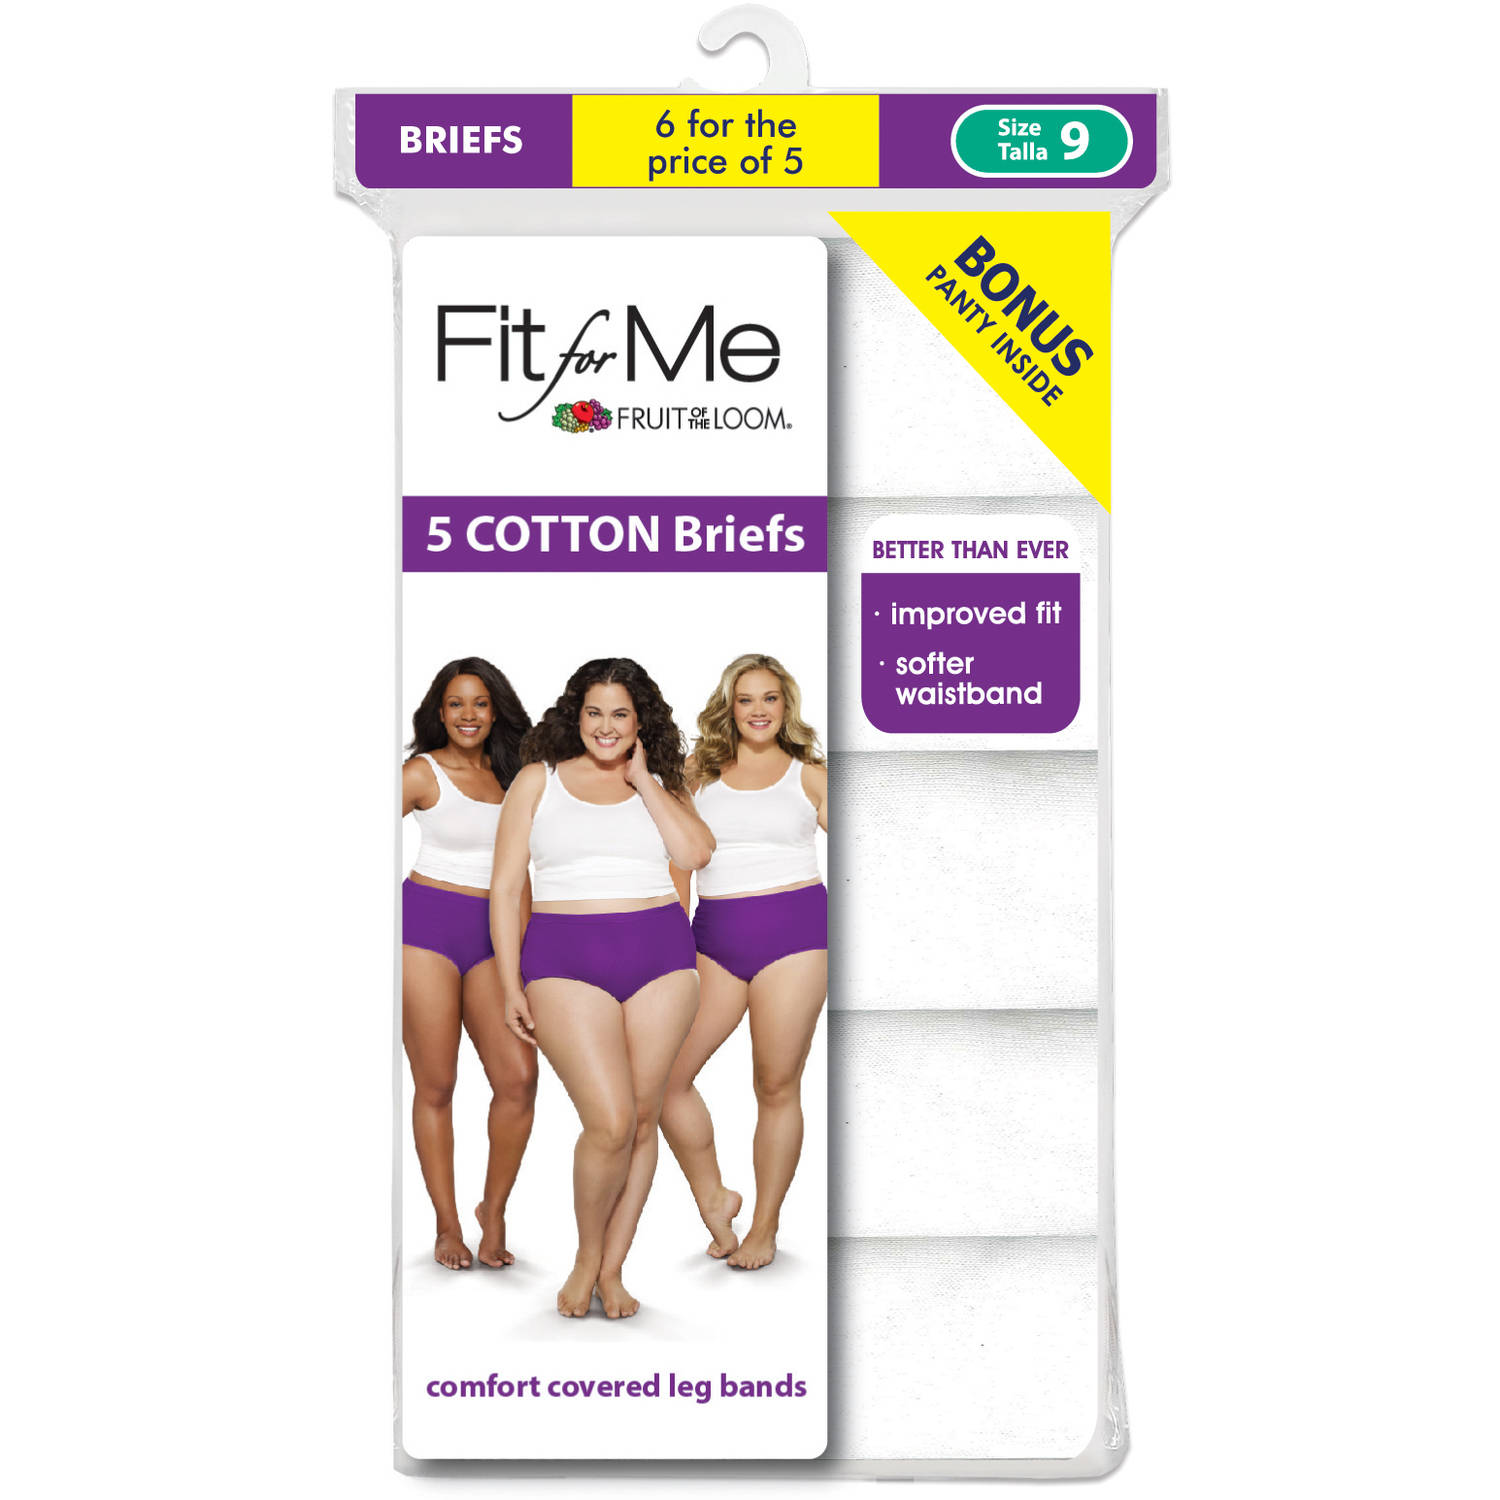 Fit for Me by Fruit of the Loom 5+1 bonus pack Cotton White Brief